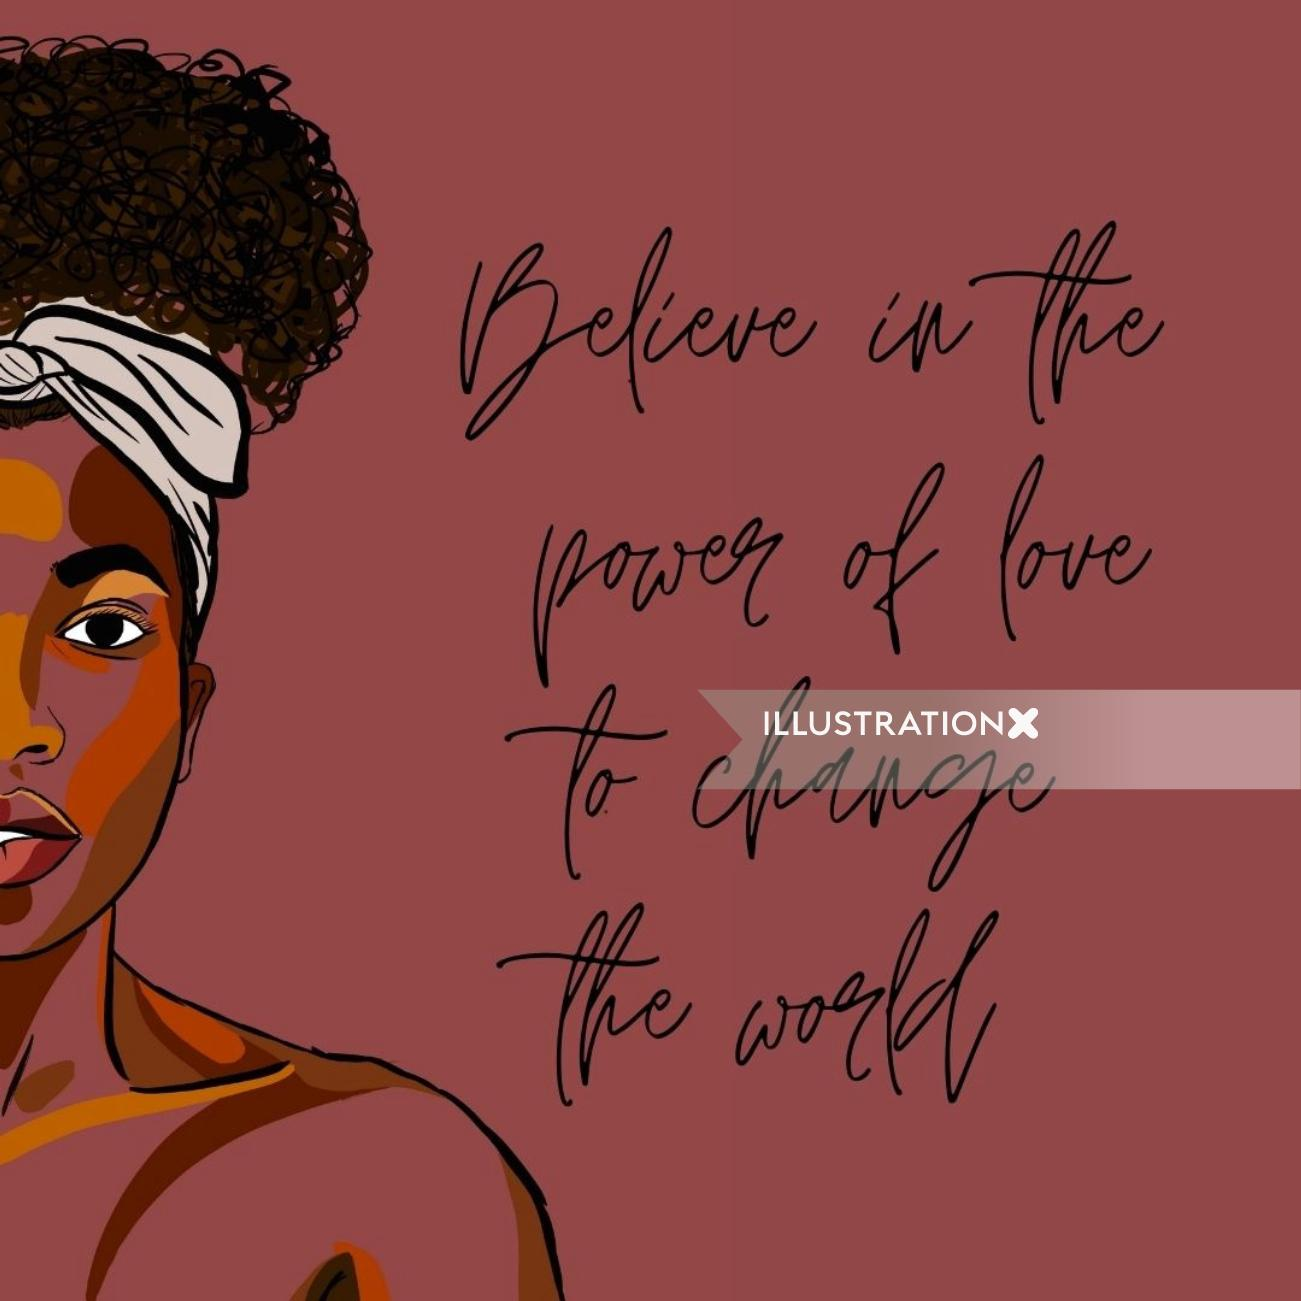 Believe in the power of love to change the world